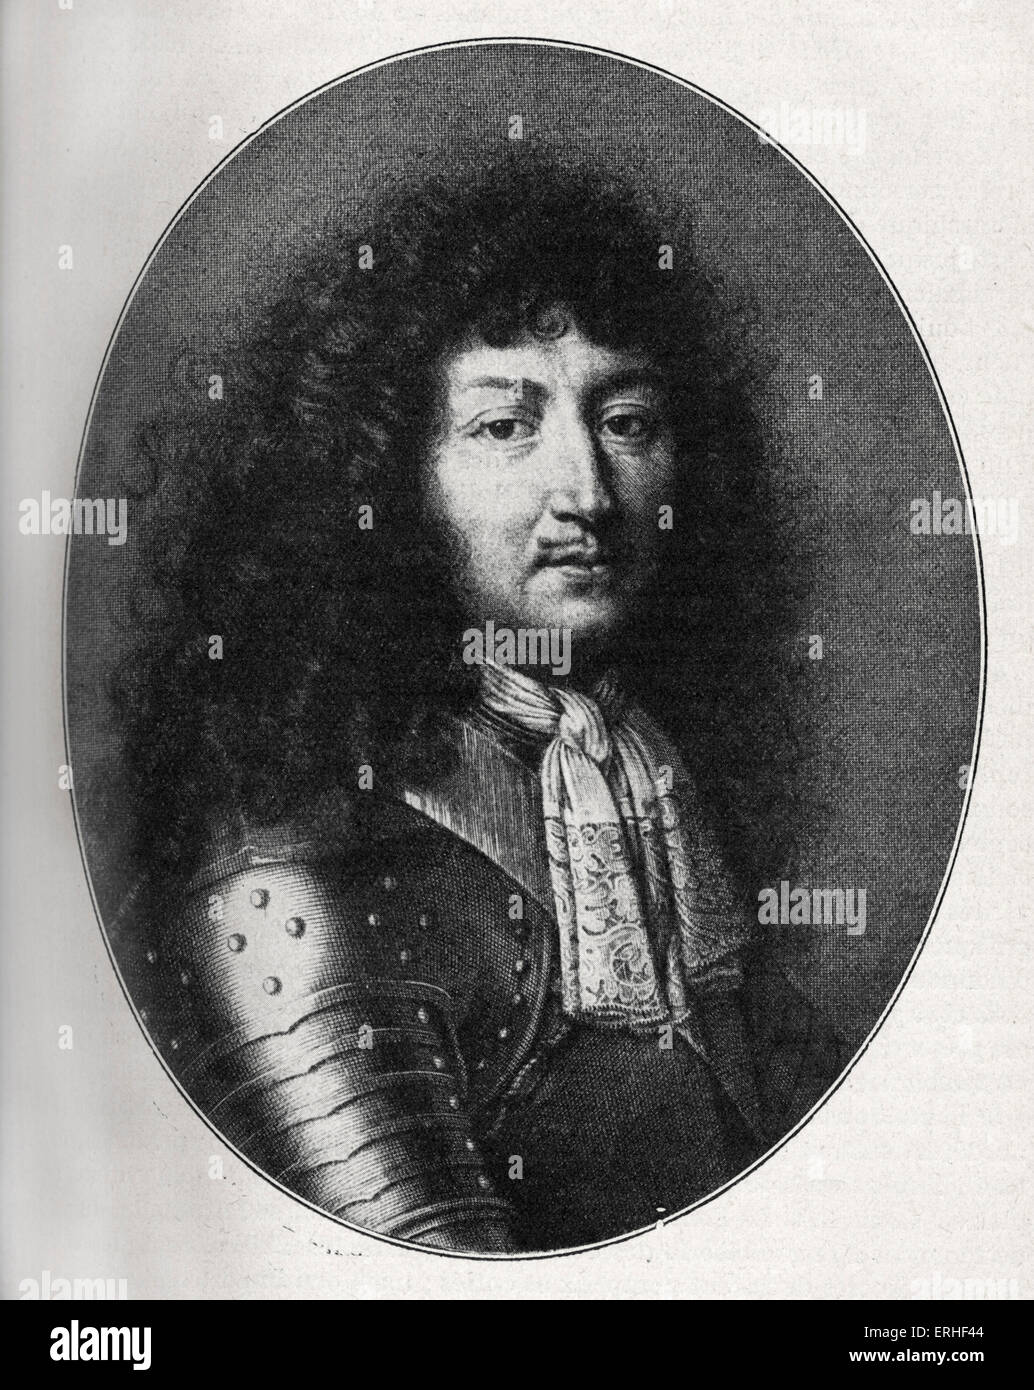 French king Louis XIV (1638-1715) - portrait in 1676, after an engraving by F. de Poilly. Stock Photo